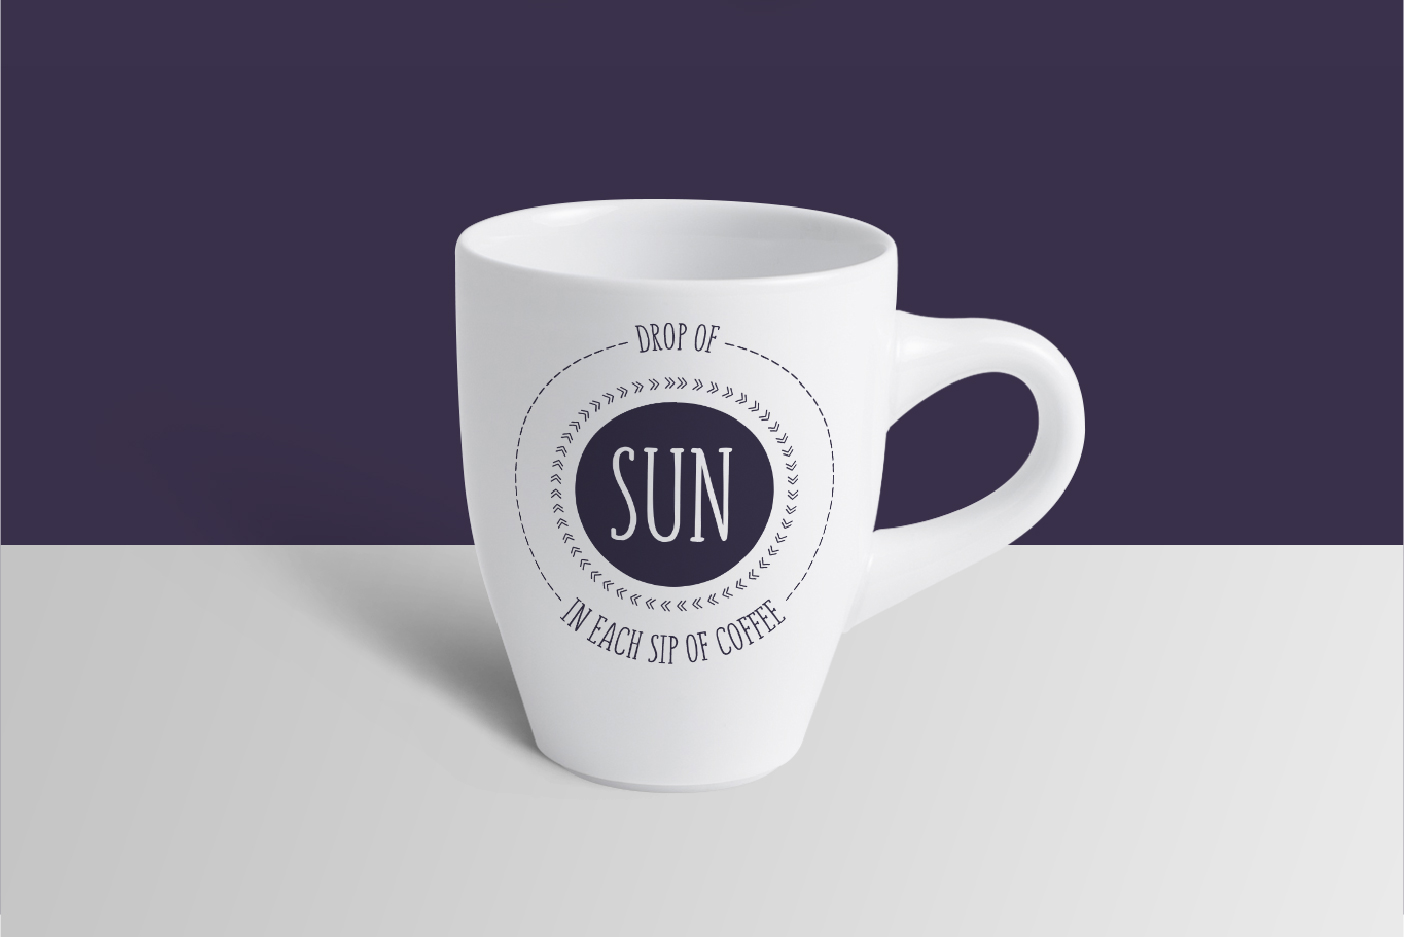 SUNN Serif Caps Only Font example image 5